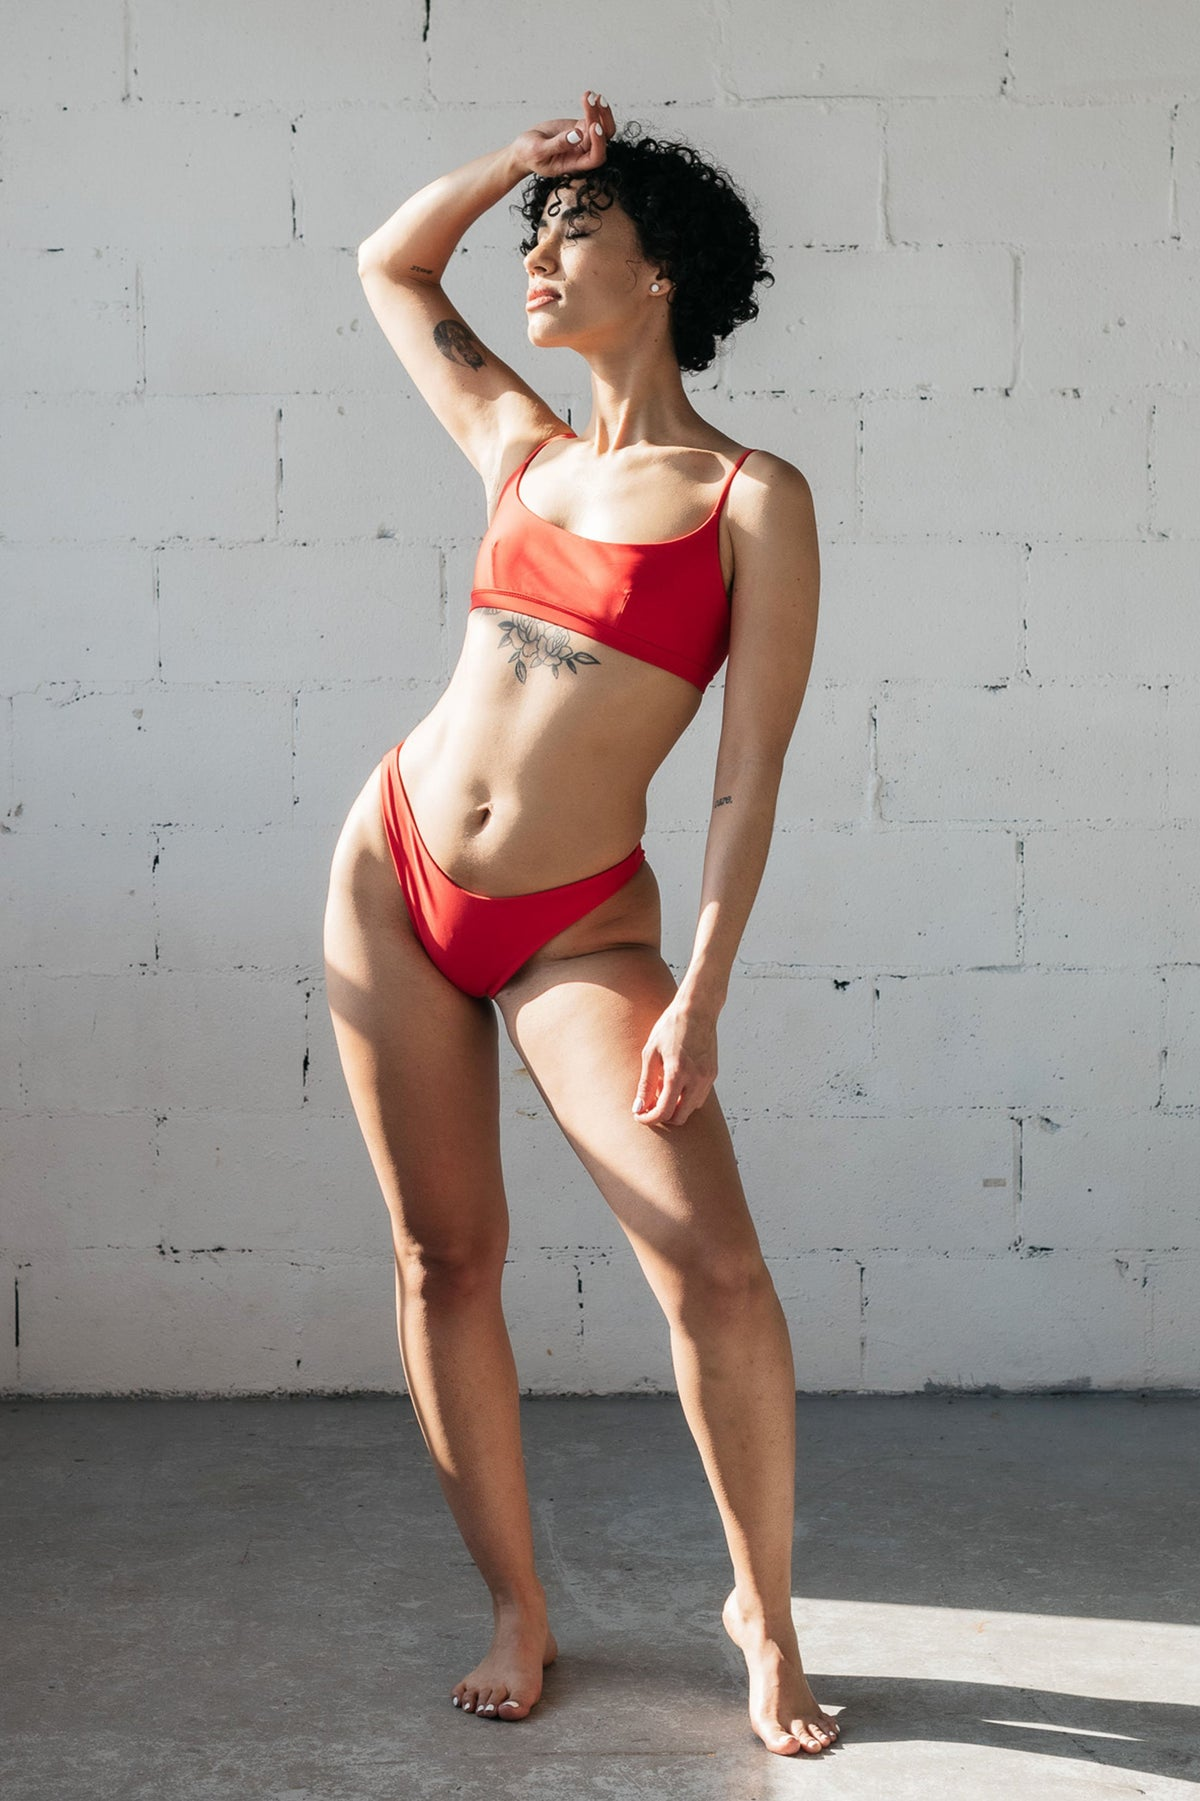 A woman standing with her hand on her head looking away and wearing red high cut bikini bottoms and a red scoop neck bikini top.